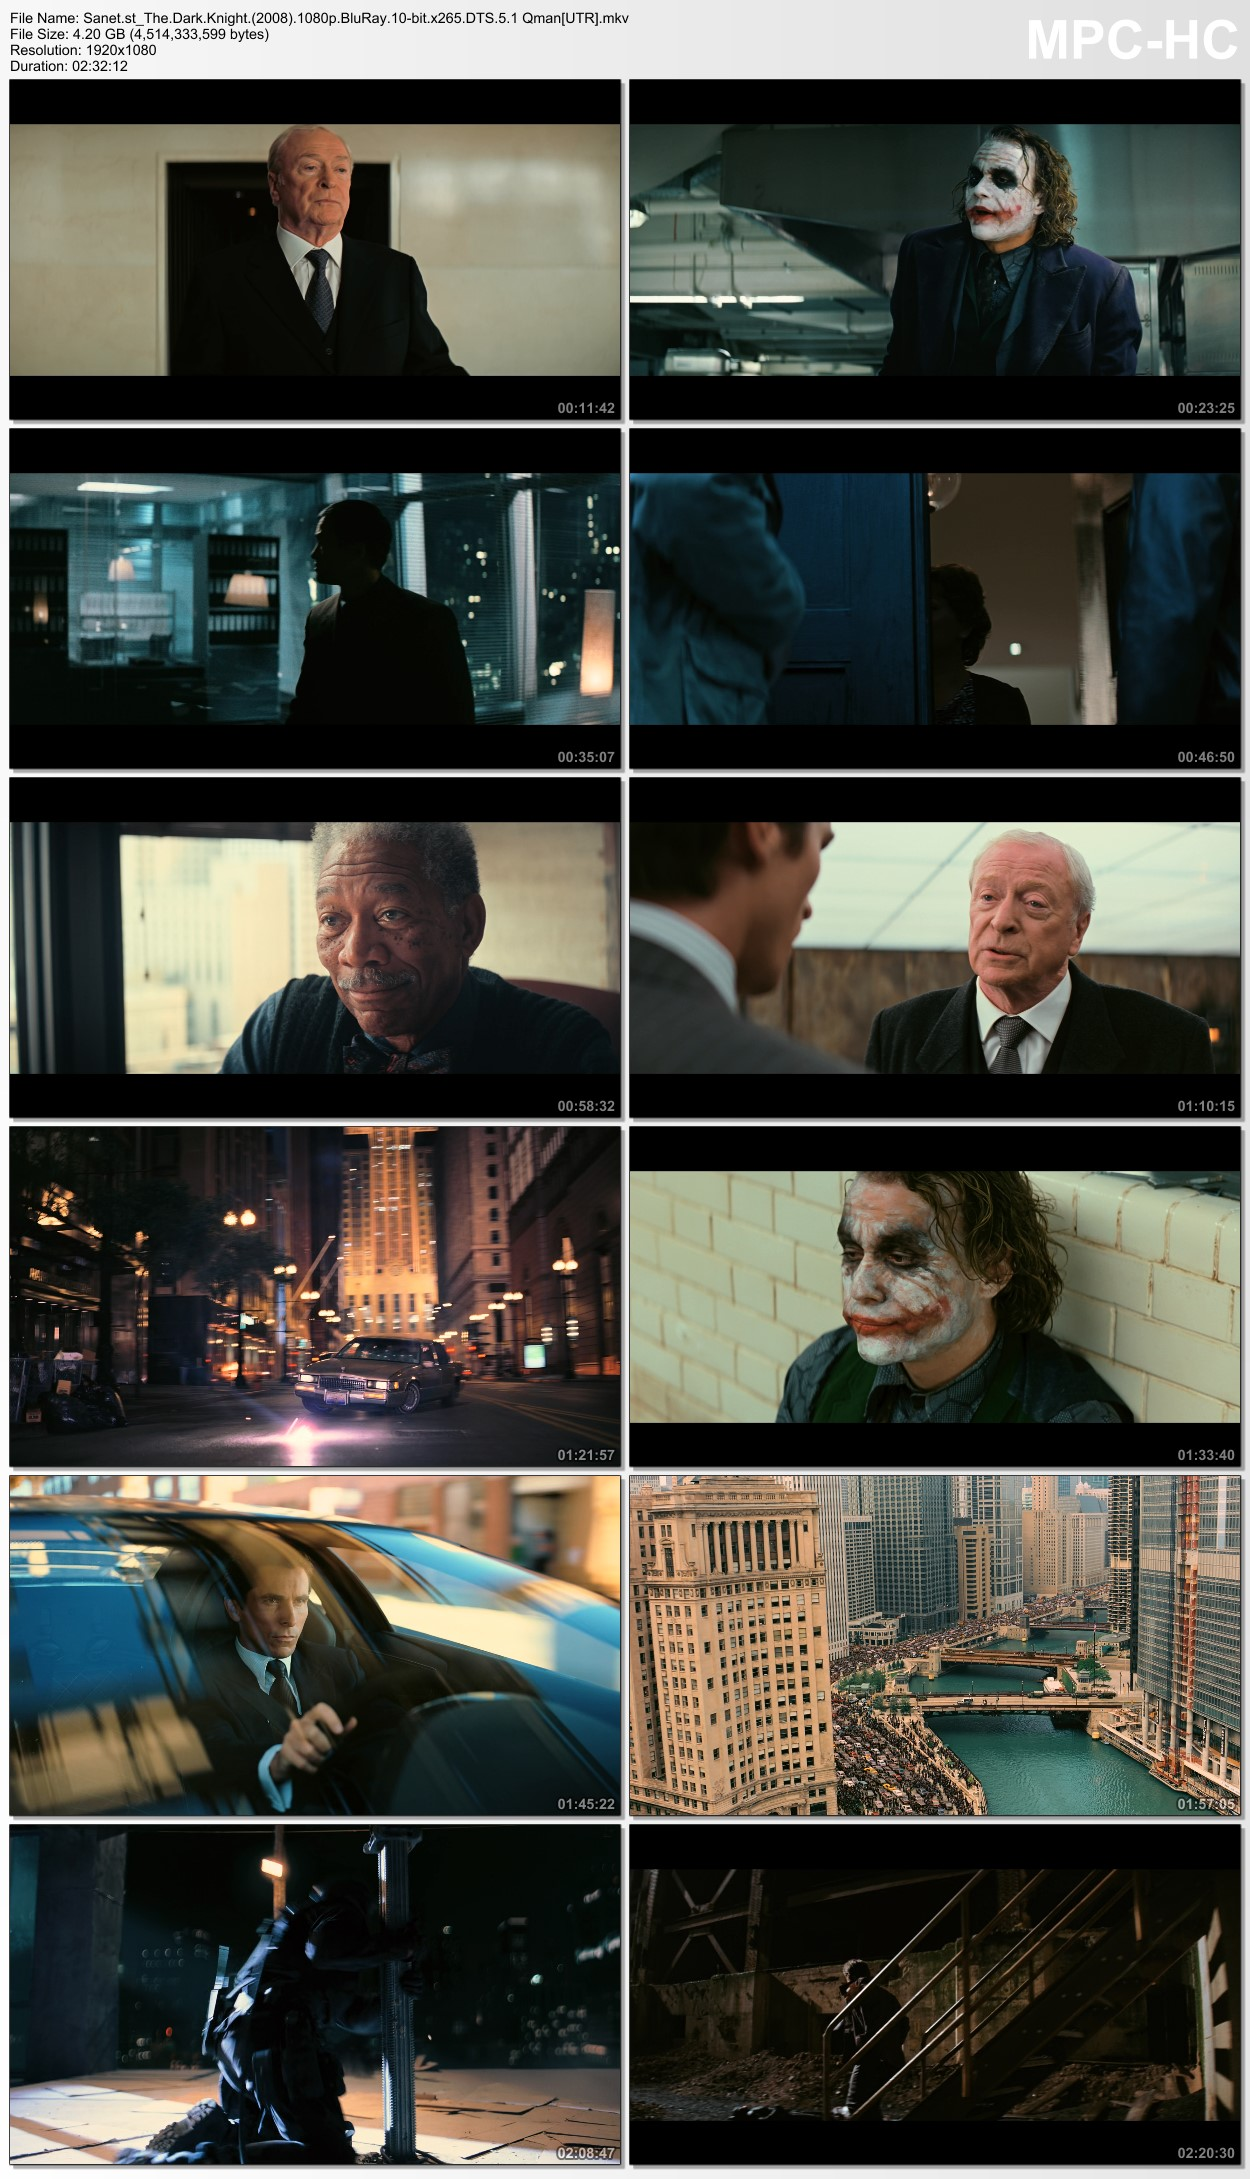 Download The Dark Knight 2008 1080p BluRay 10bit x265 HEVC DTS 5 1